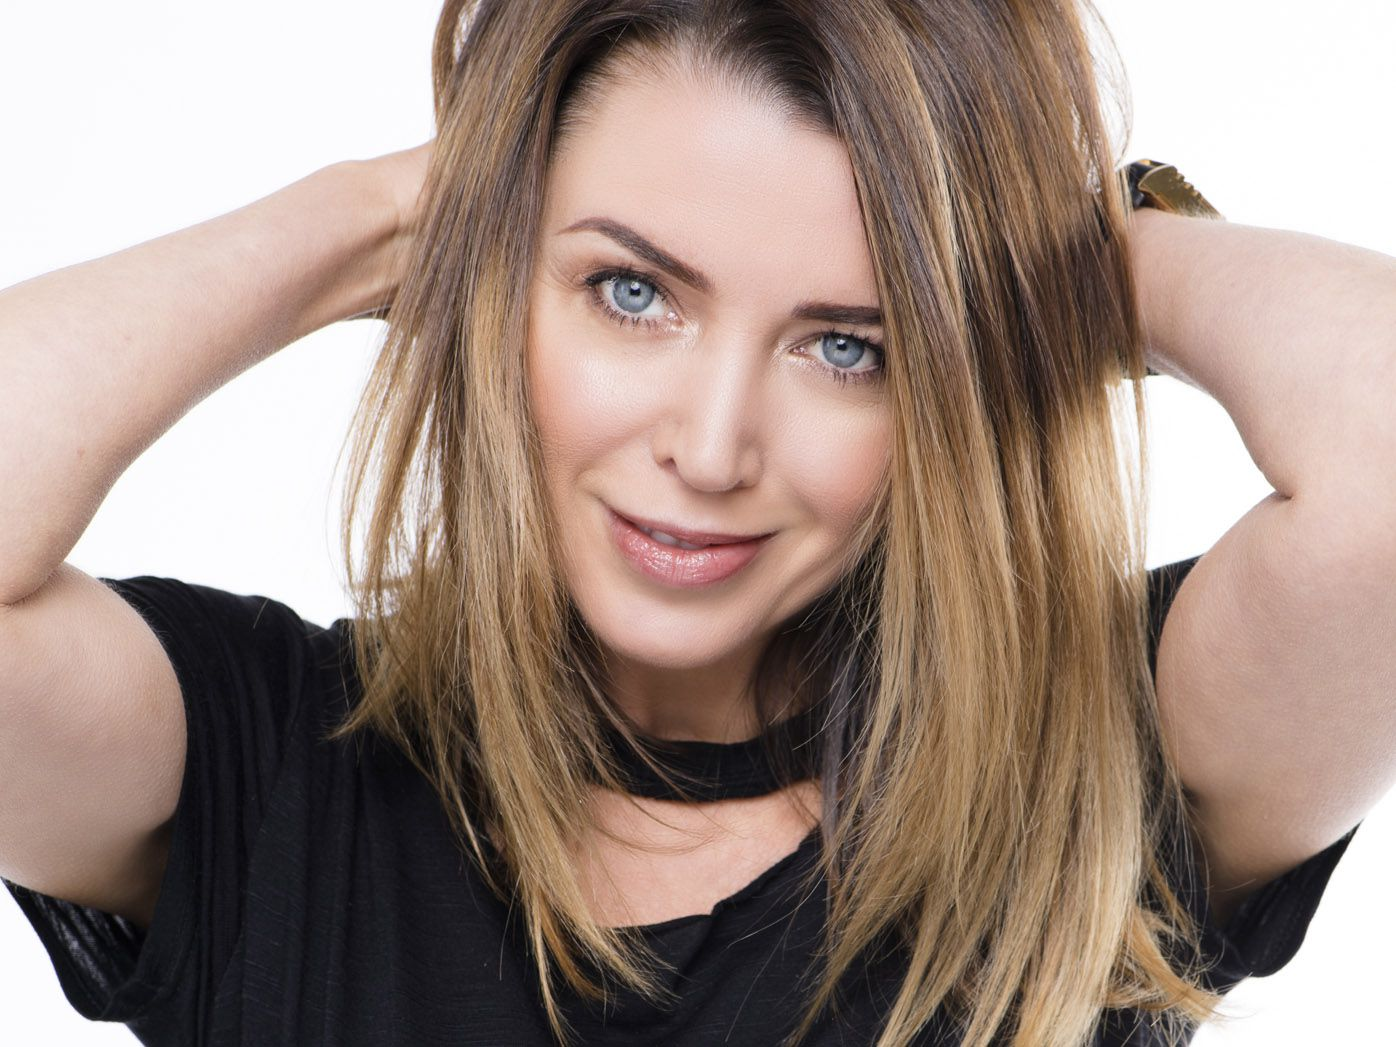 Dannii Minogue is gorgeous as a brunette. But wait till you see her as a blonde!